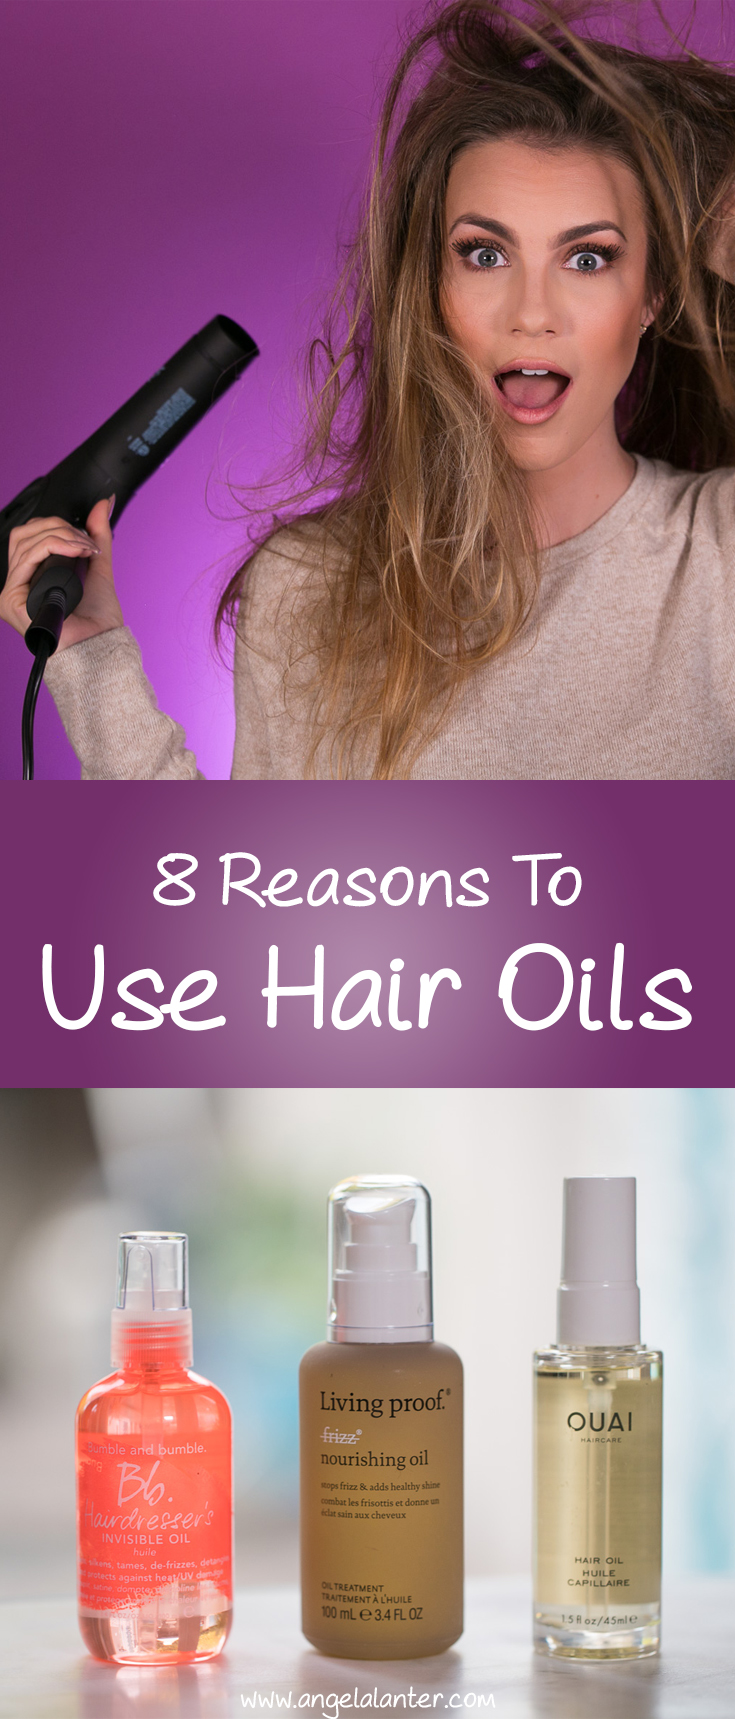 8 Reasons to Use Hair Oils